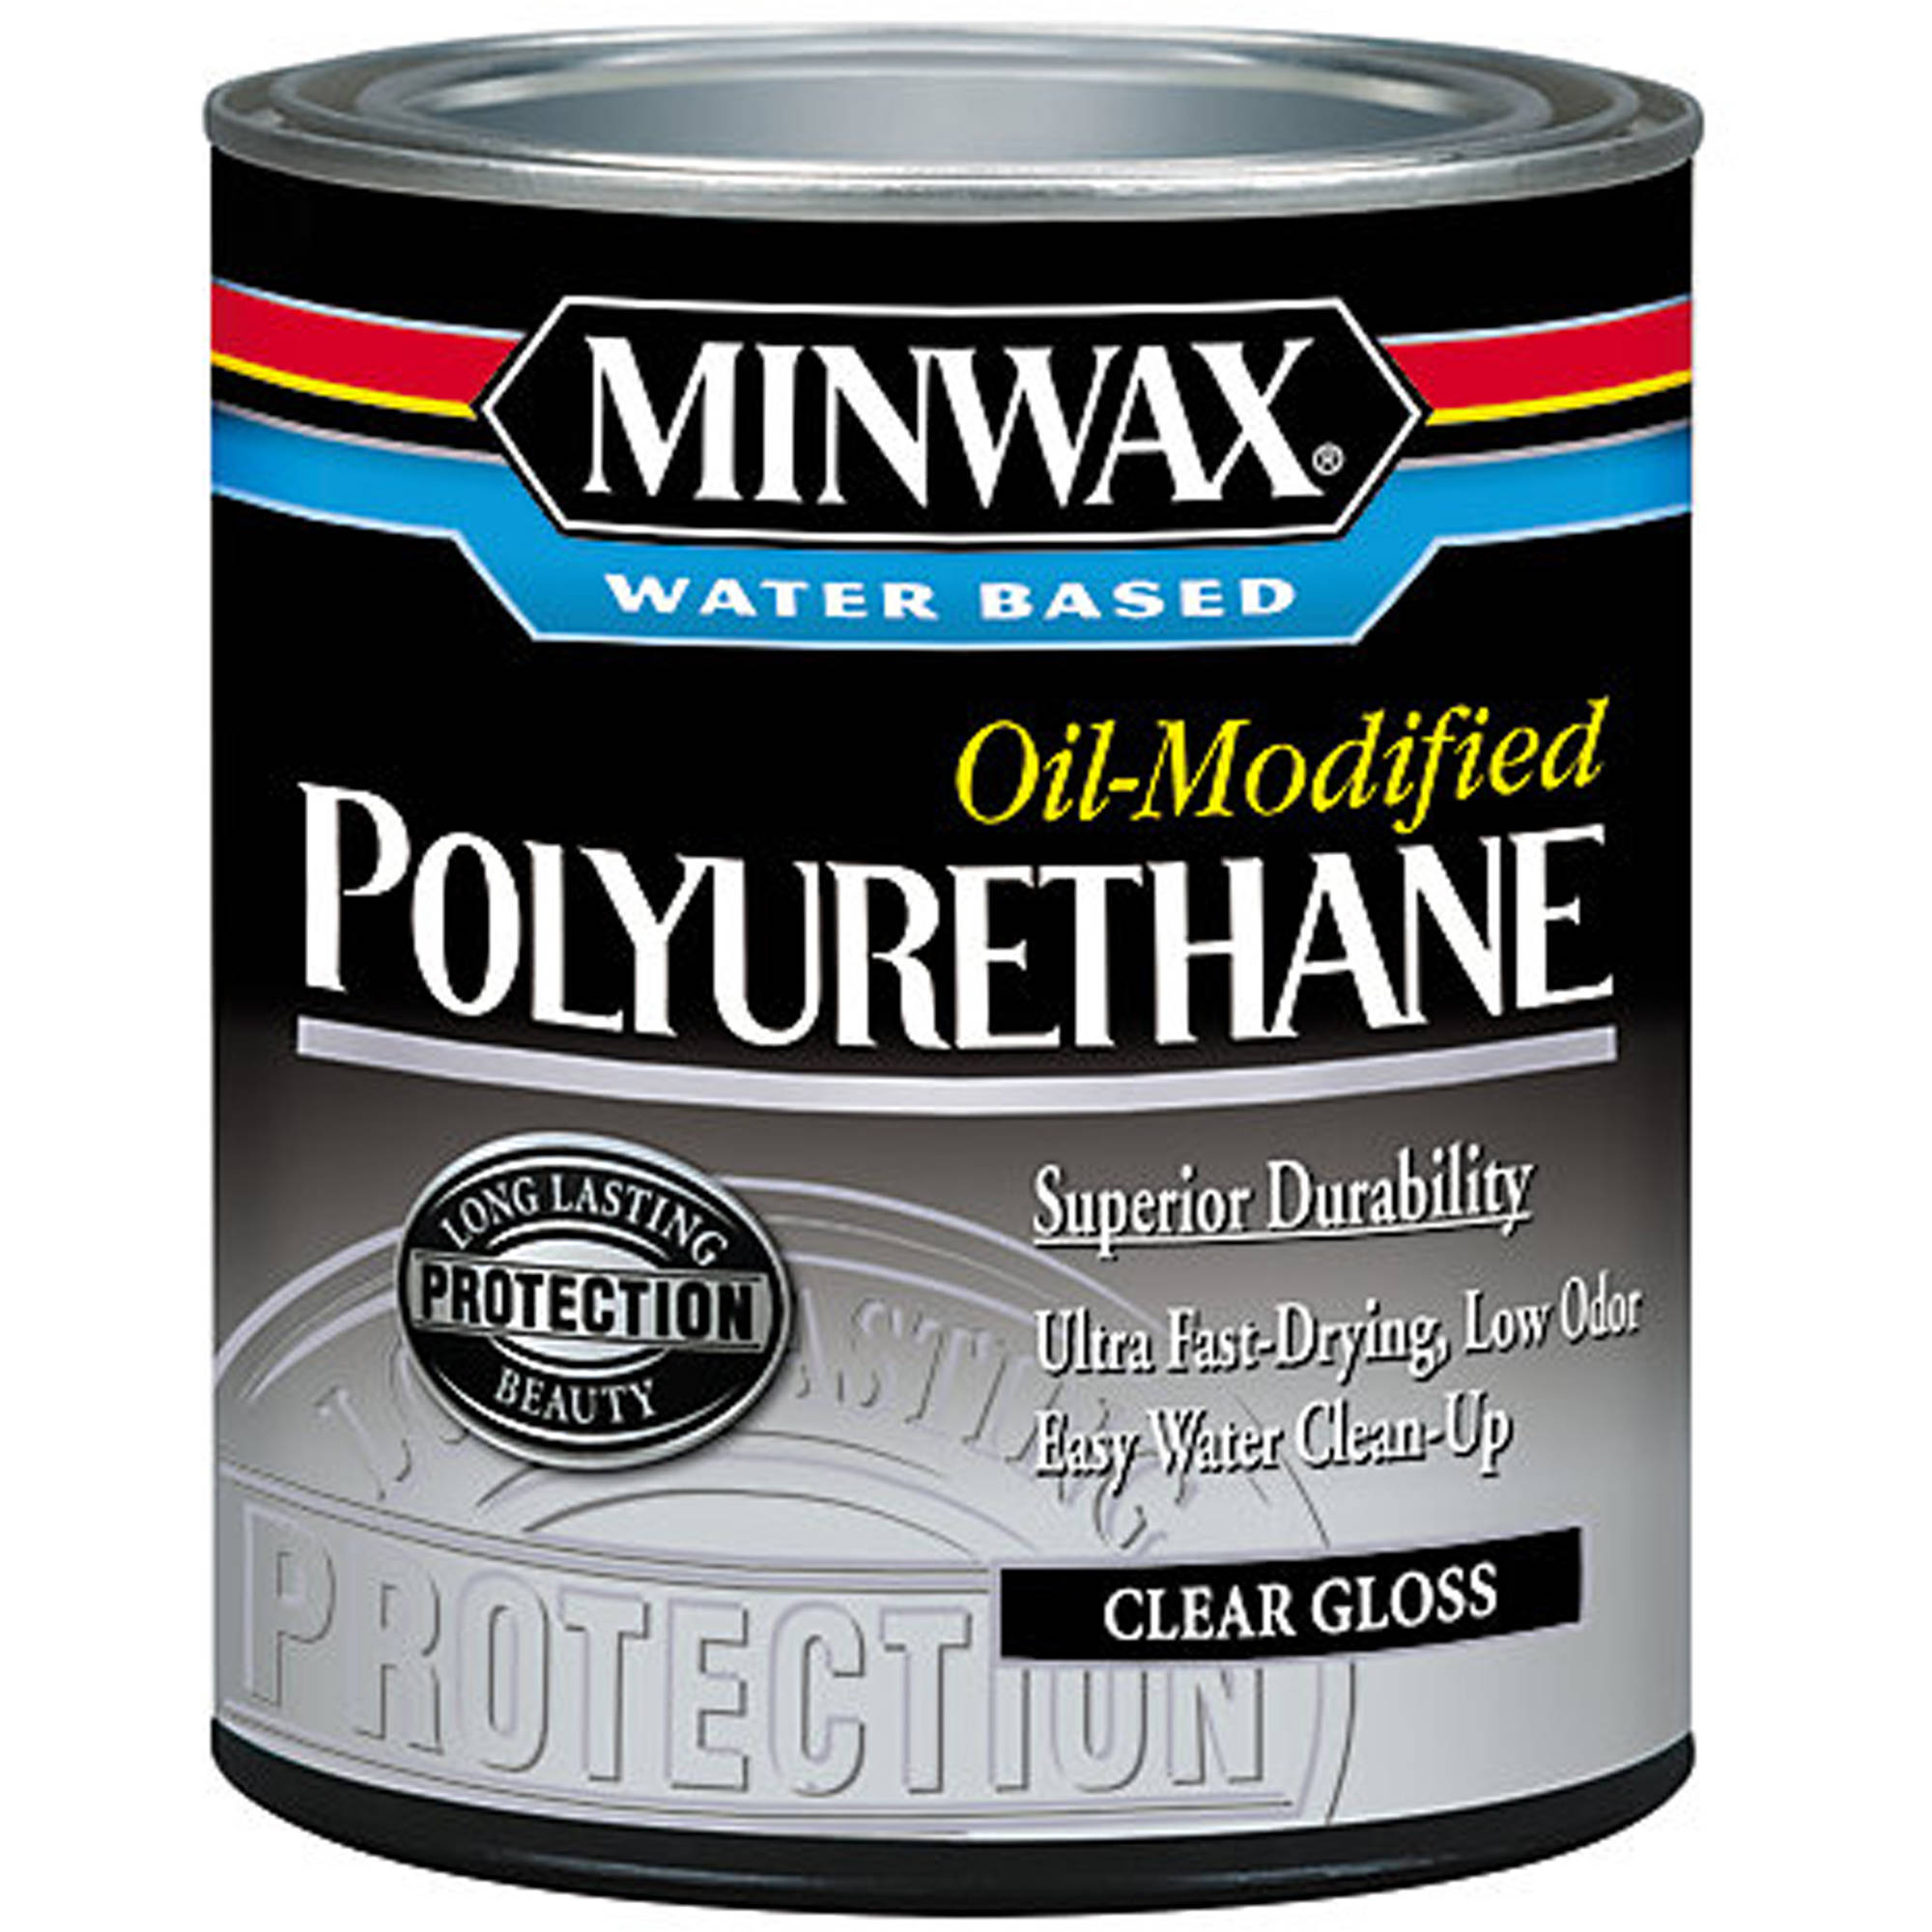 Minwax Water-Based, Oil-Modified Polyurethane Finish, 1 Qt, Gloss